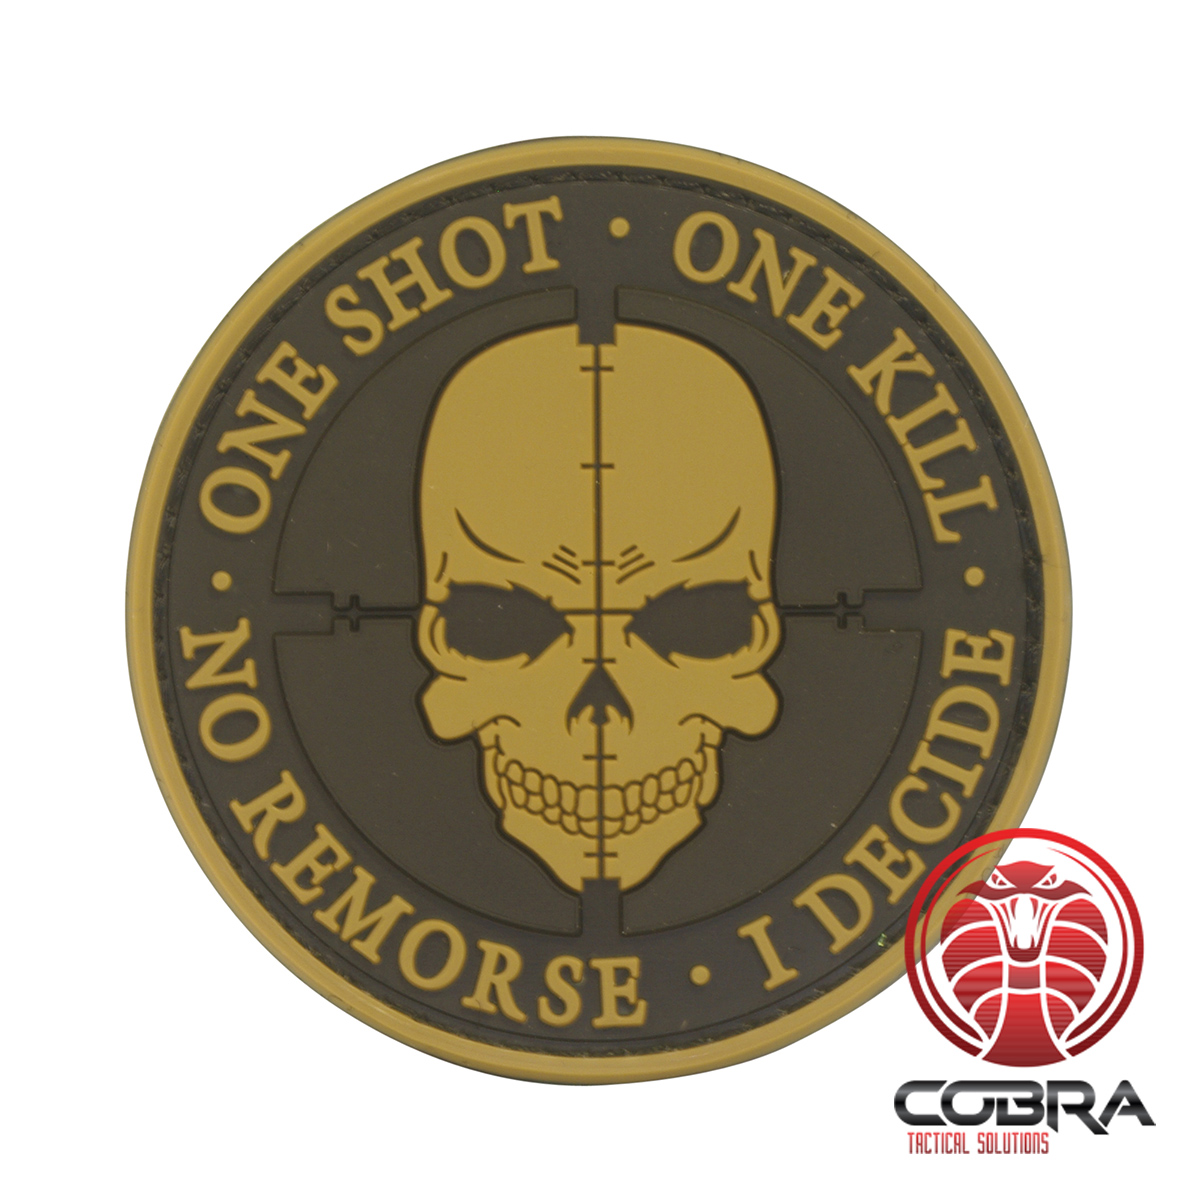 Cobra Tactical Solutions One Shot One Kill No Remorse I Decide 3D Brown Sniper skull PVC Patch with Hook /& Loop Airsoft